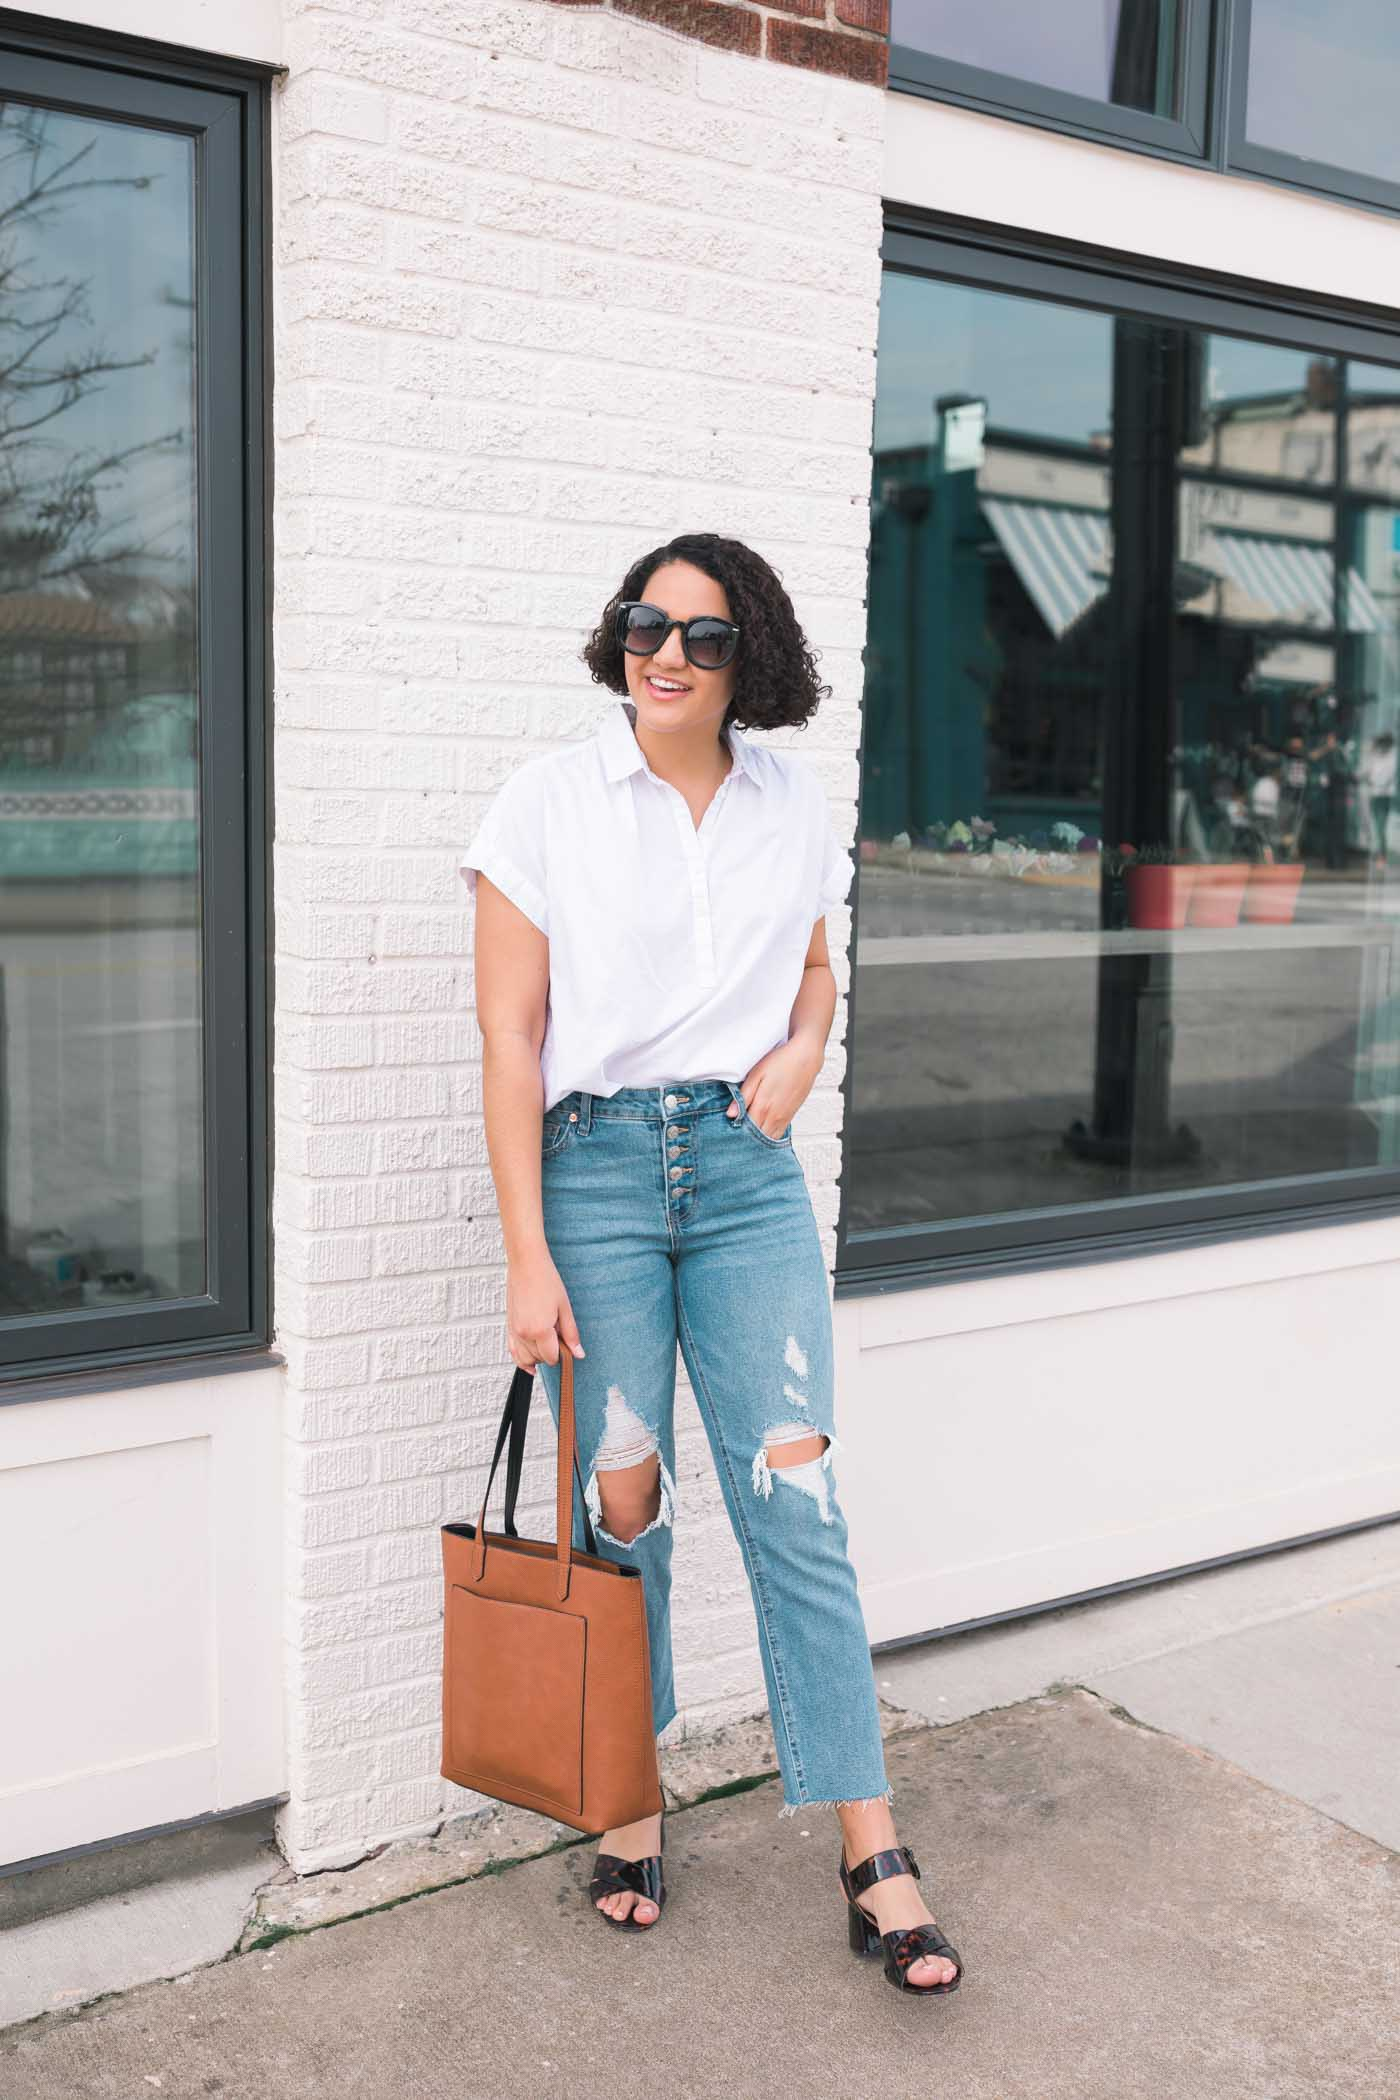 girl with curly hair wearing a white blouse, ripped mom jeans, a cognac tote bag, and sunglasses